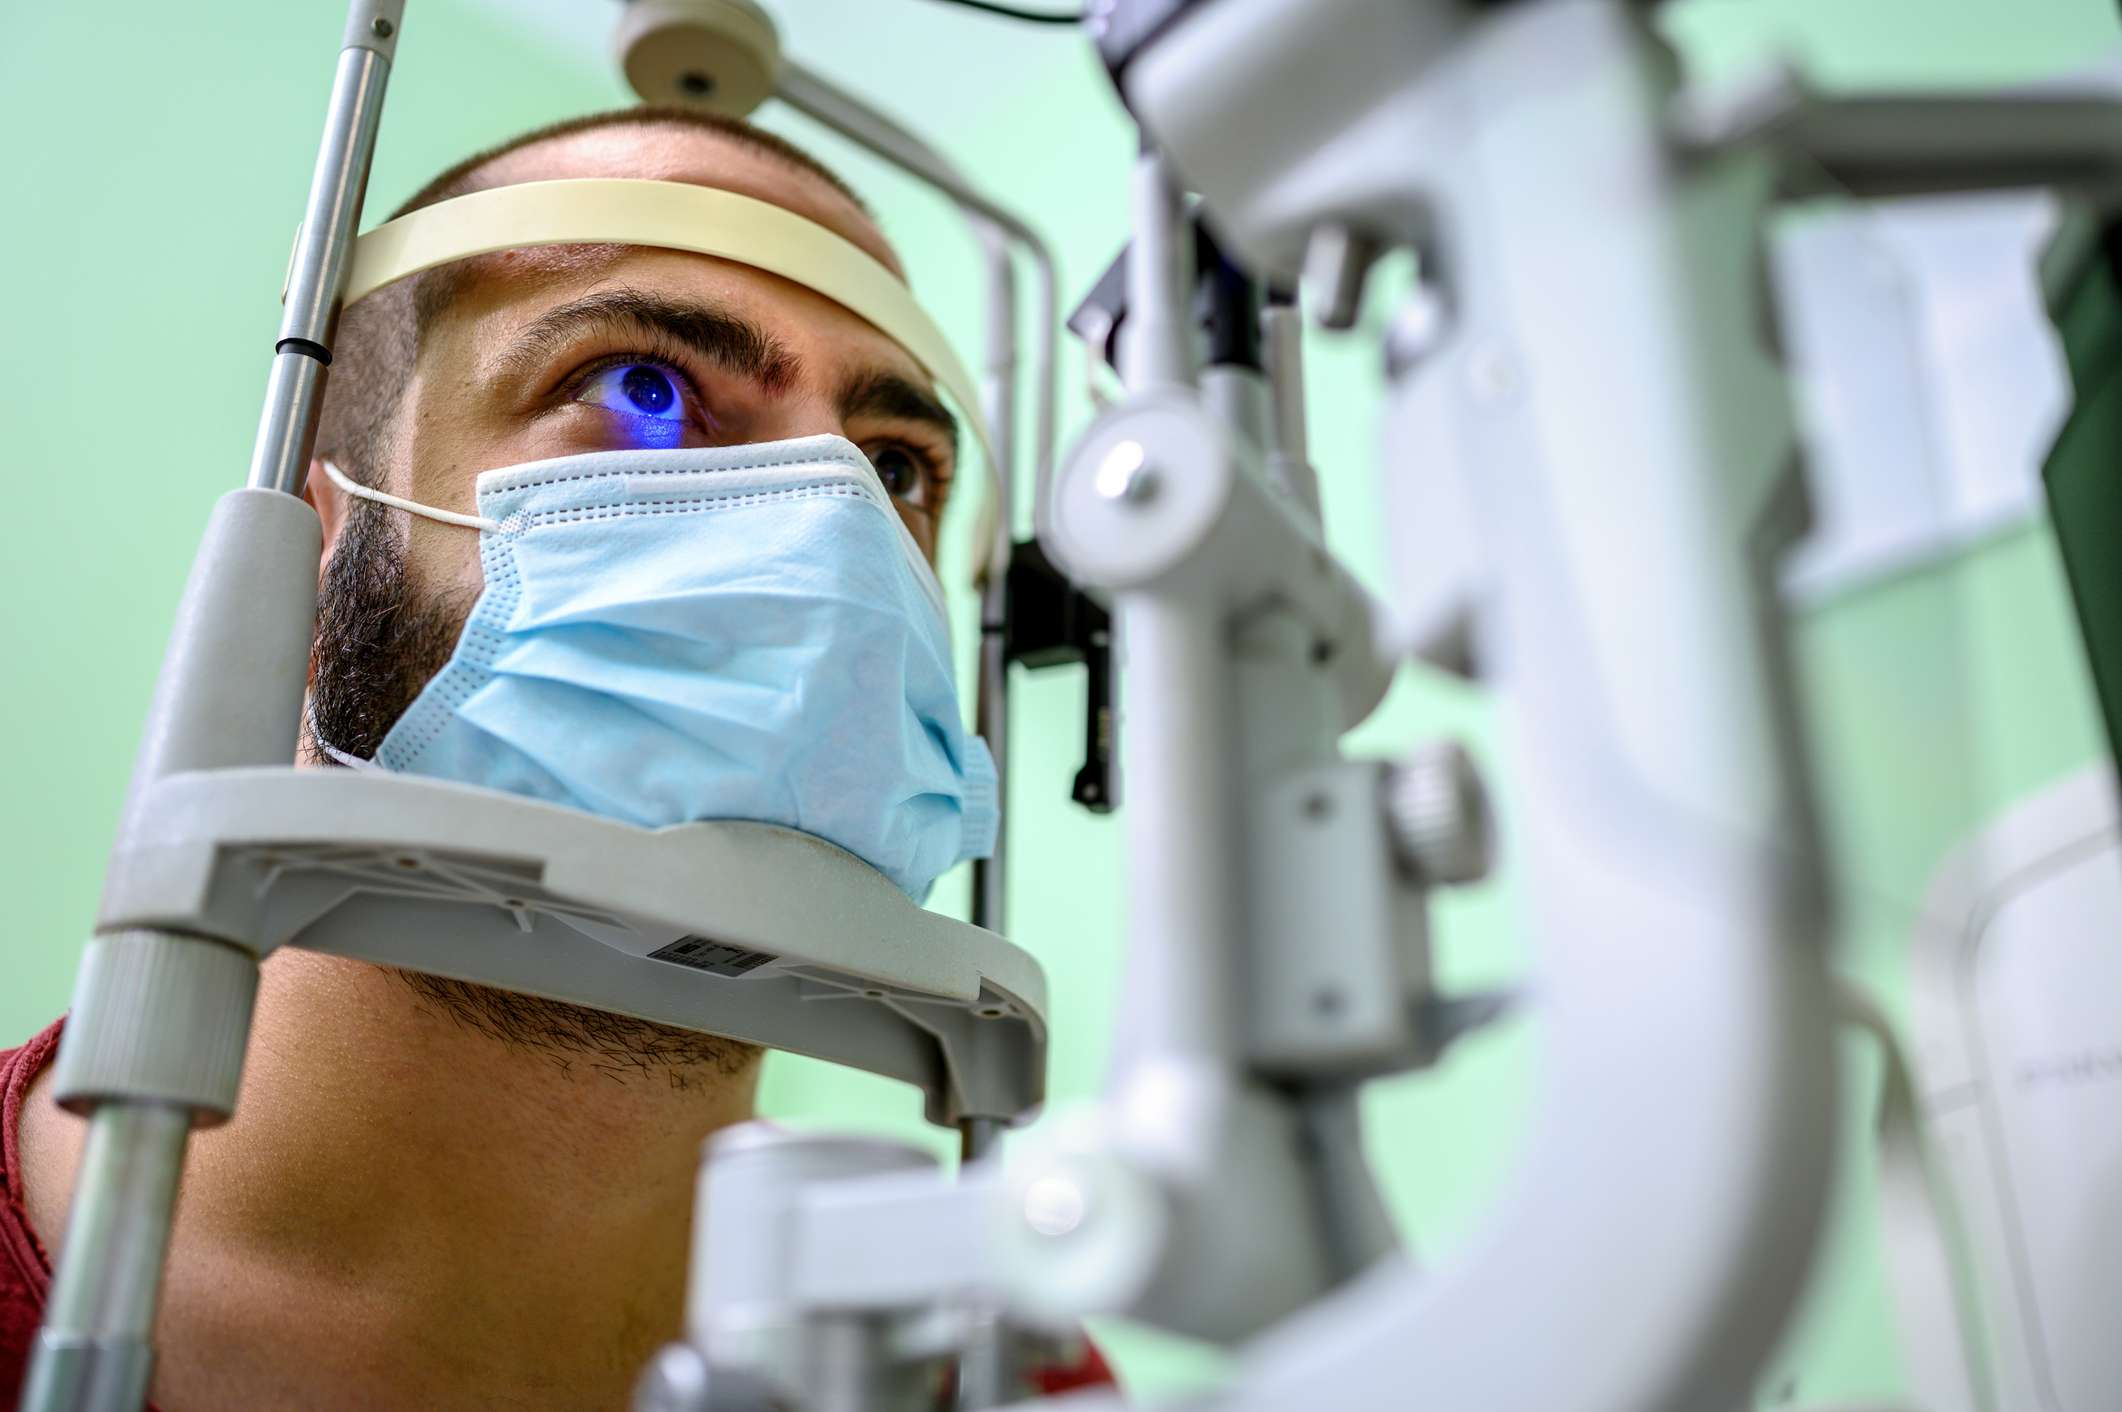 Man having an eye exam at ophthalmologist's office